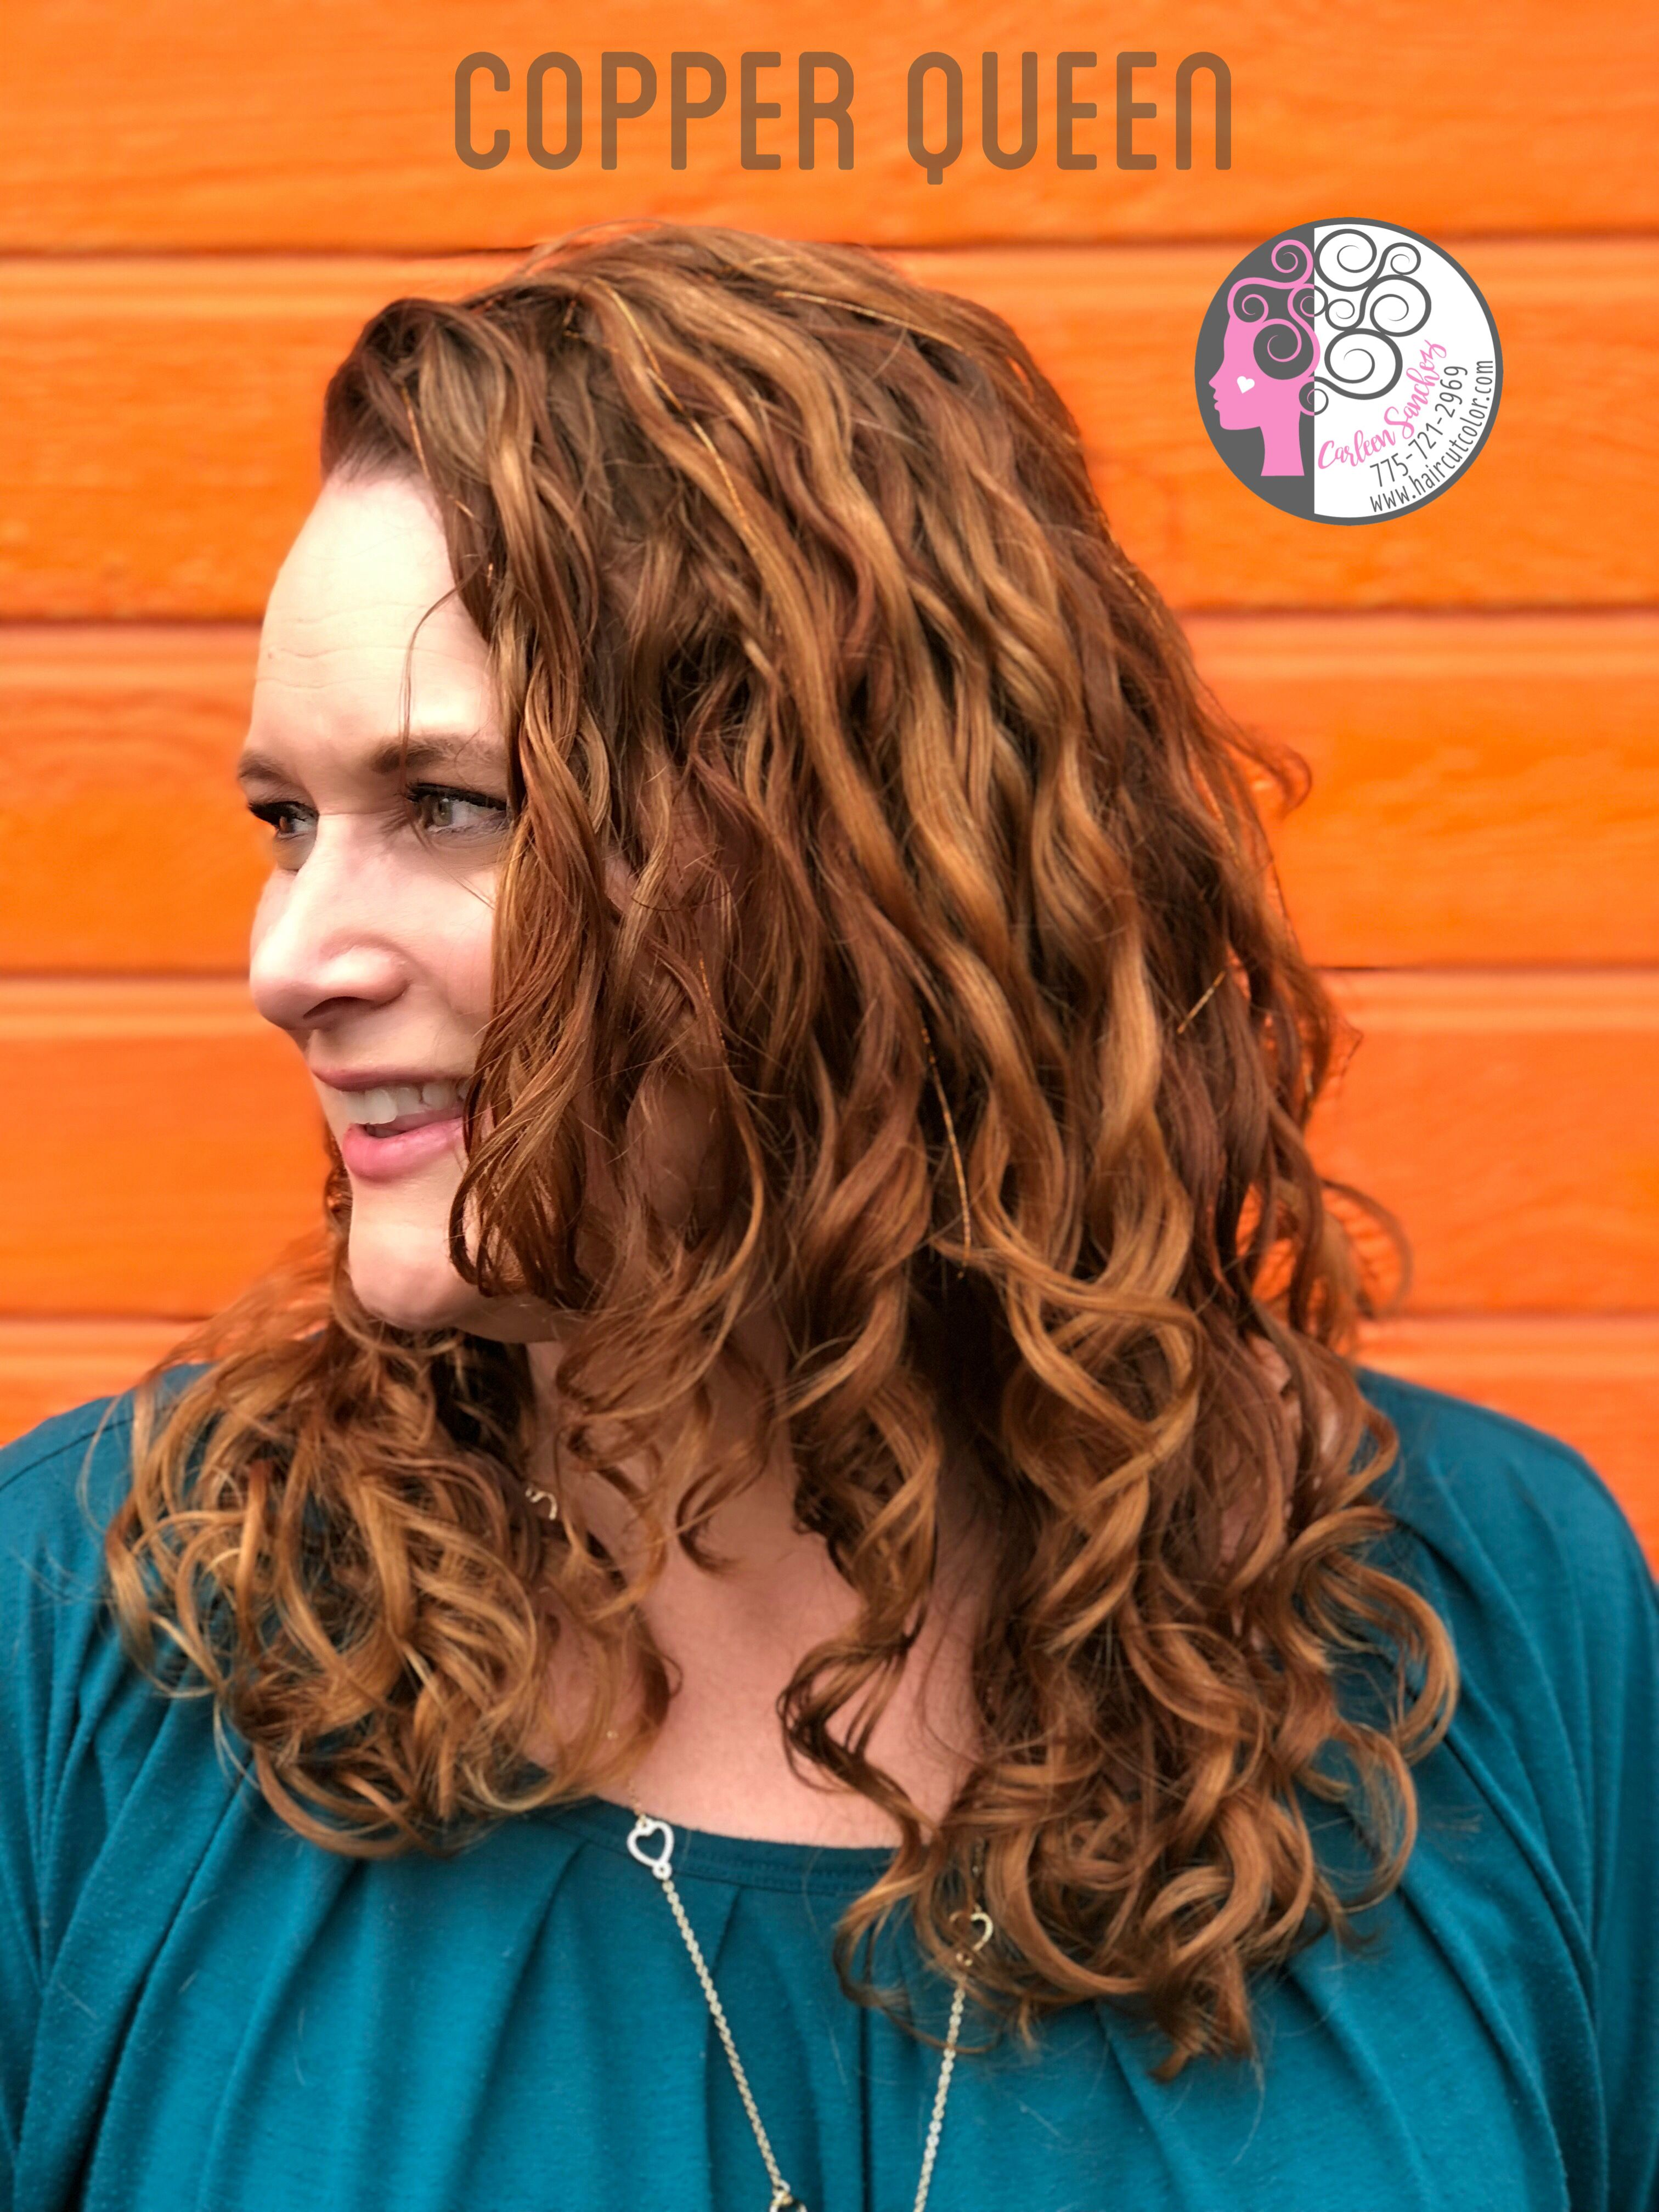 Copper And Balayage Highlights For Naturally Curly Wavy Hair By Carleen Sanchez 775 721 2969 Curly Hair Styles Wavy Curly Hair Curly Hair Styles Naturally